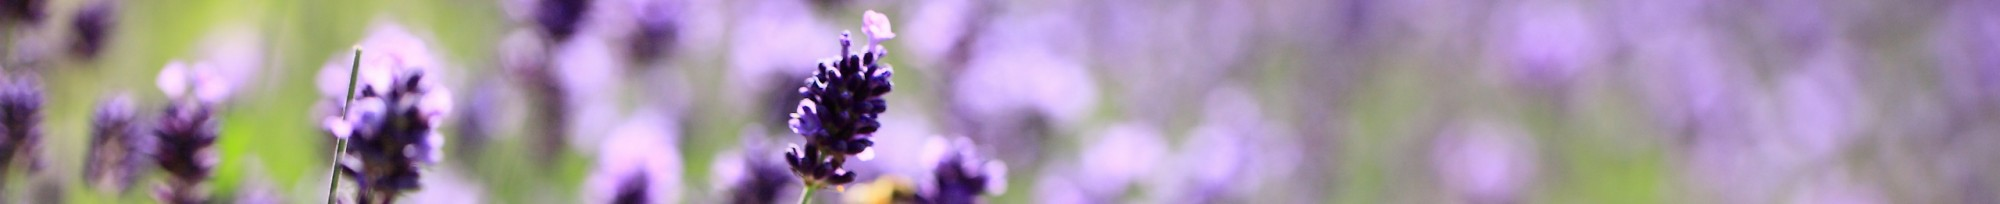 cropped-lavender-lavender-lilac-purple-flowers-field-meadow-close-up-blurred12.jpg